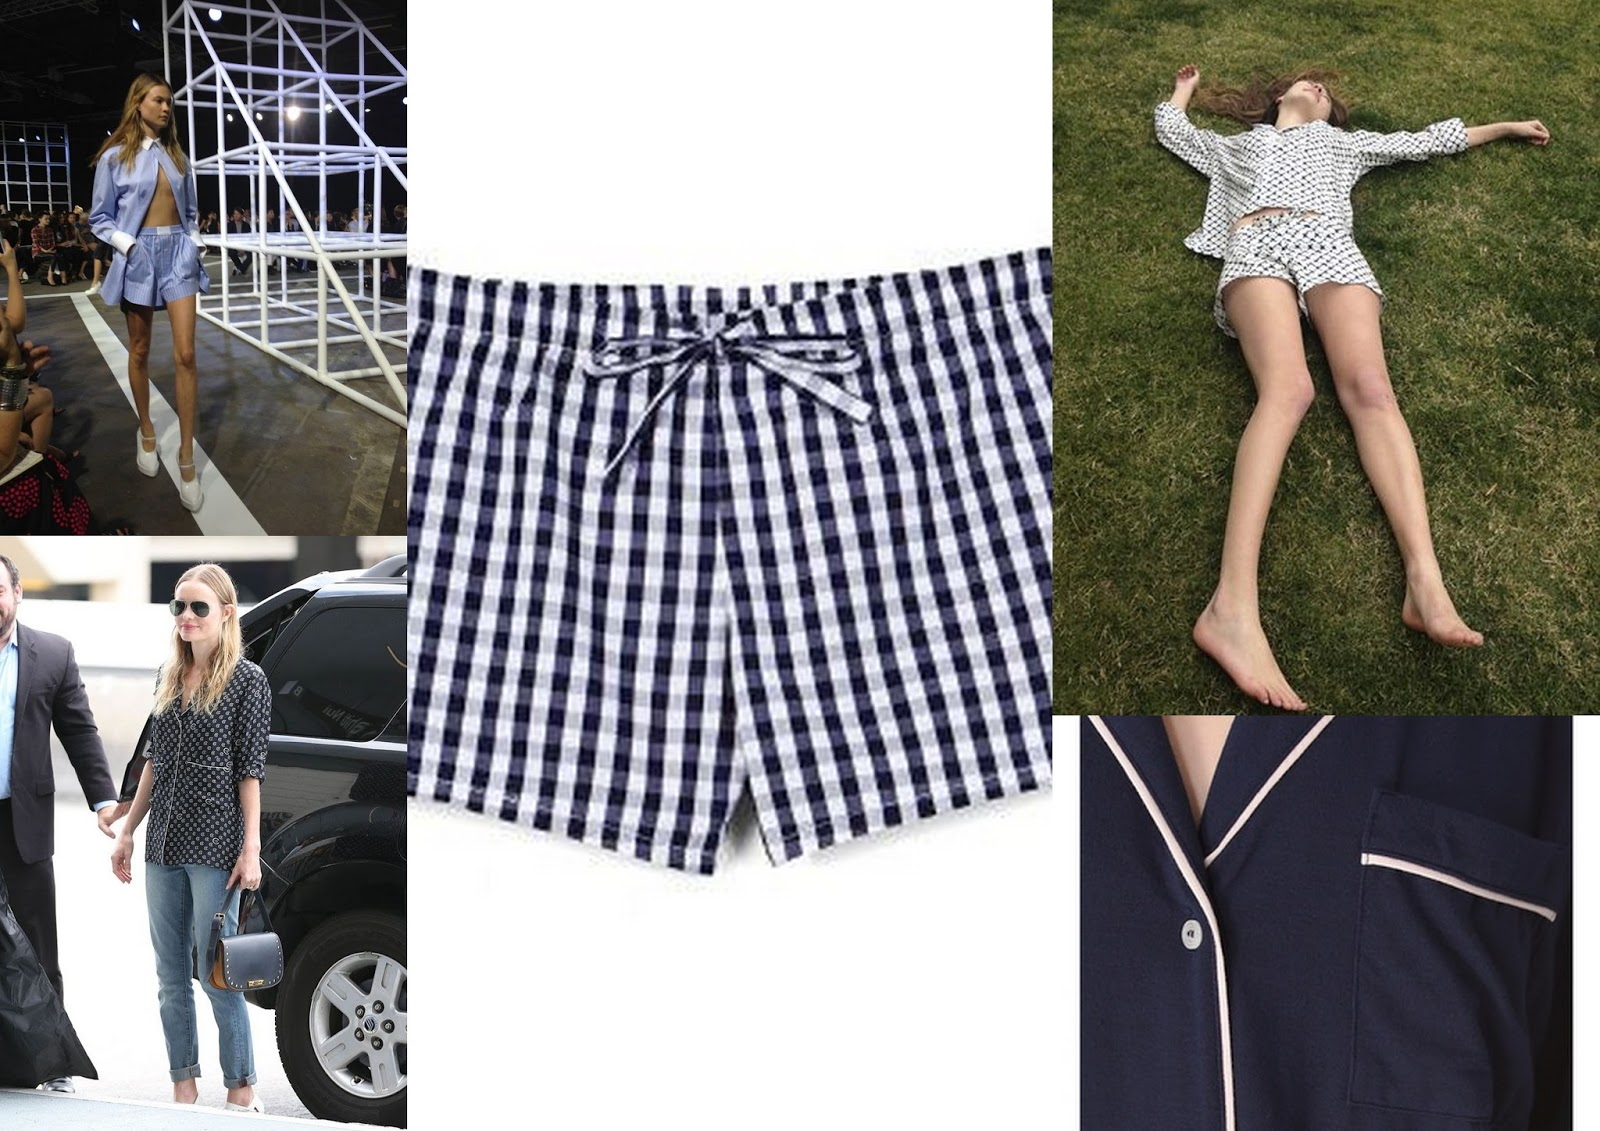 Alexander wang Pajama set, Alexabder wang spring 2014, Kate Bosworth Pajama top, Sleepyjones pajama, Vogue Gingham shorts